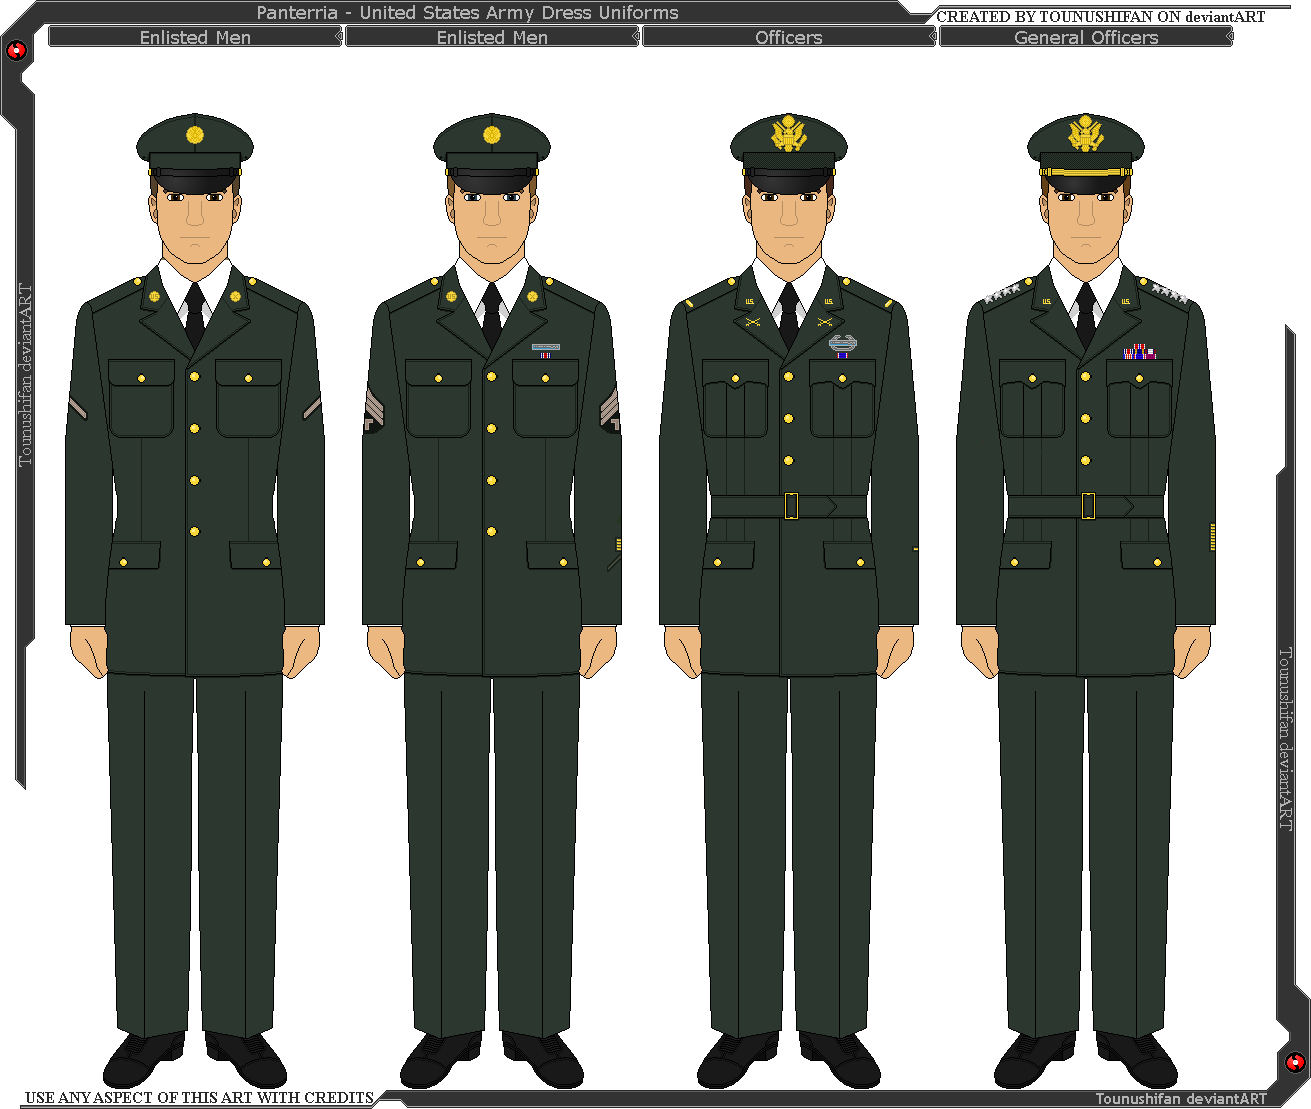 panterria united states army dress uniforms by grand